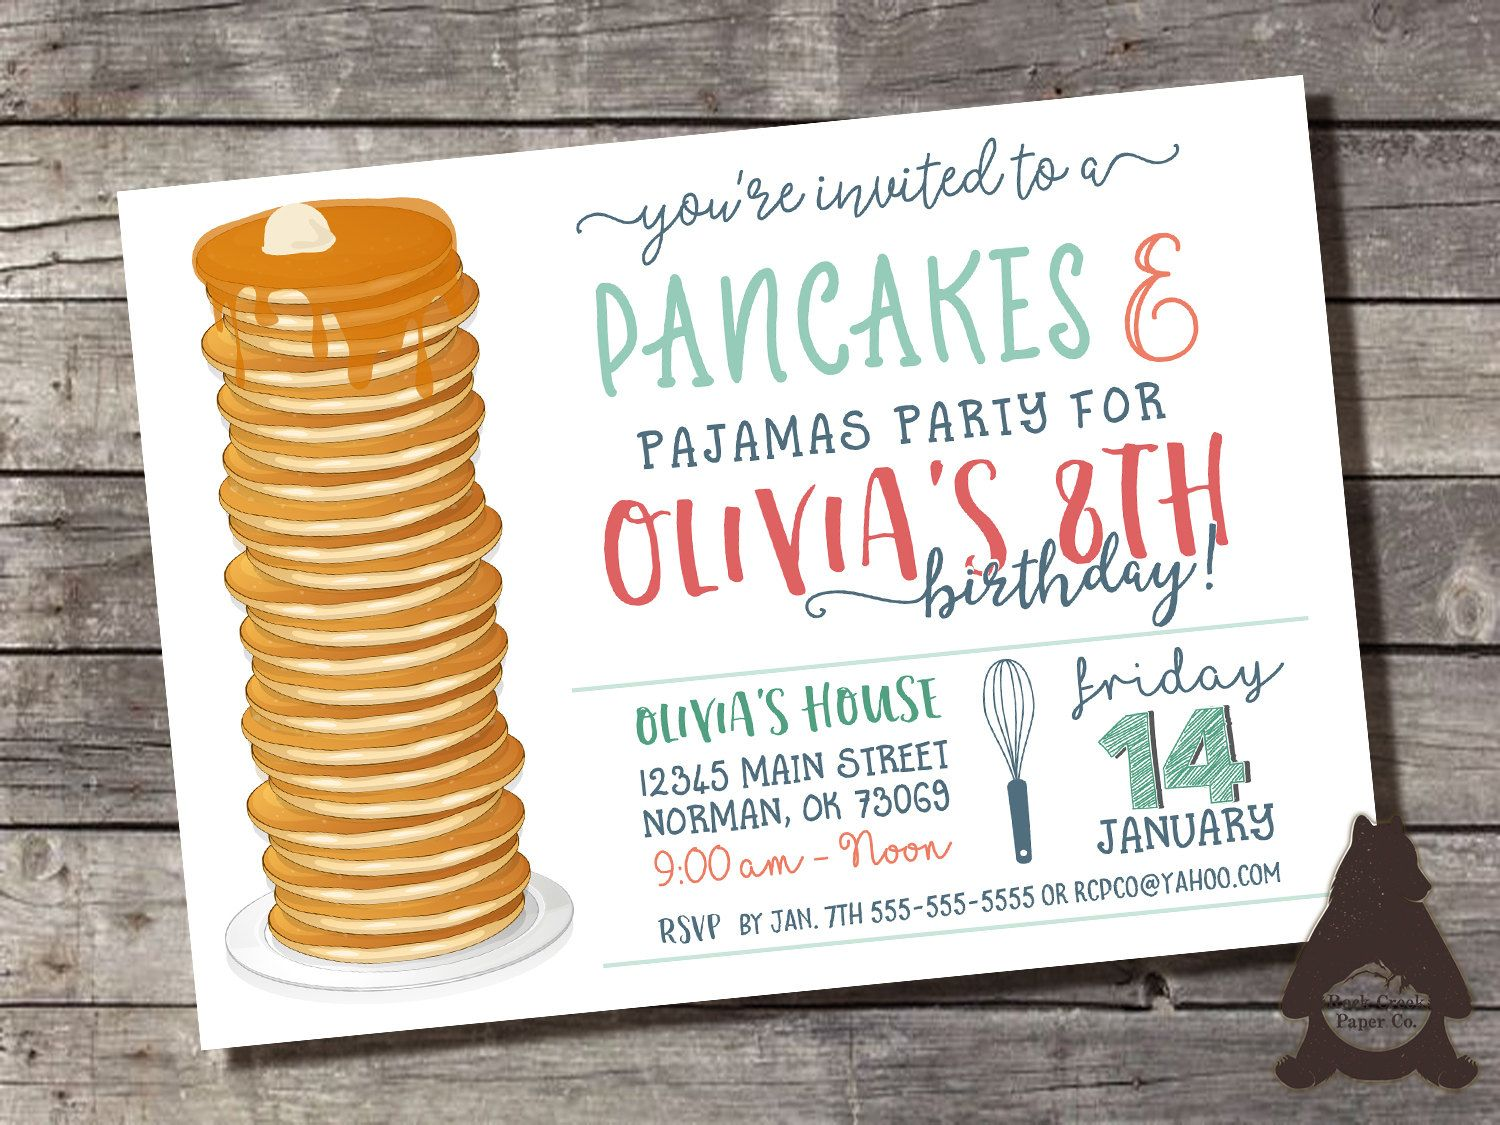 Pancakes and pajamas party invitation pancakes pajamas birthday pancakes pajamas invitation pancakes and pjs pancake breakfast party pancakes and pjs printable birthday party invitation filmwisefo